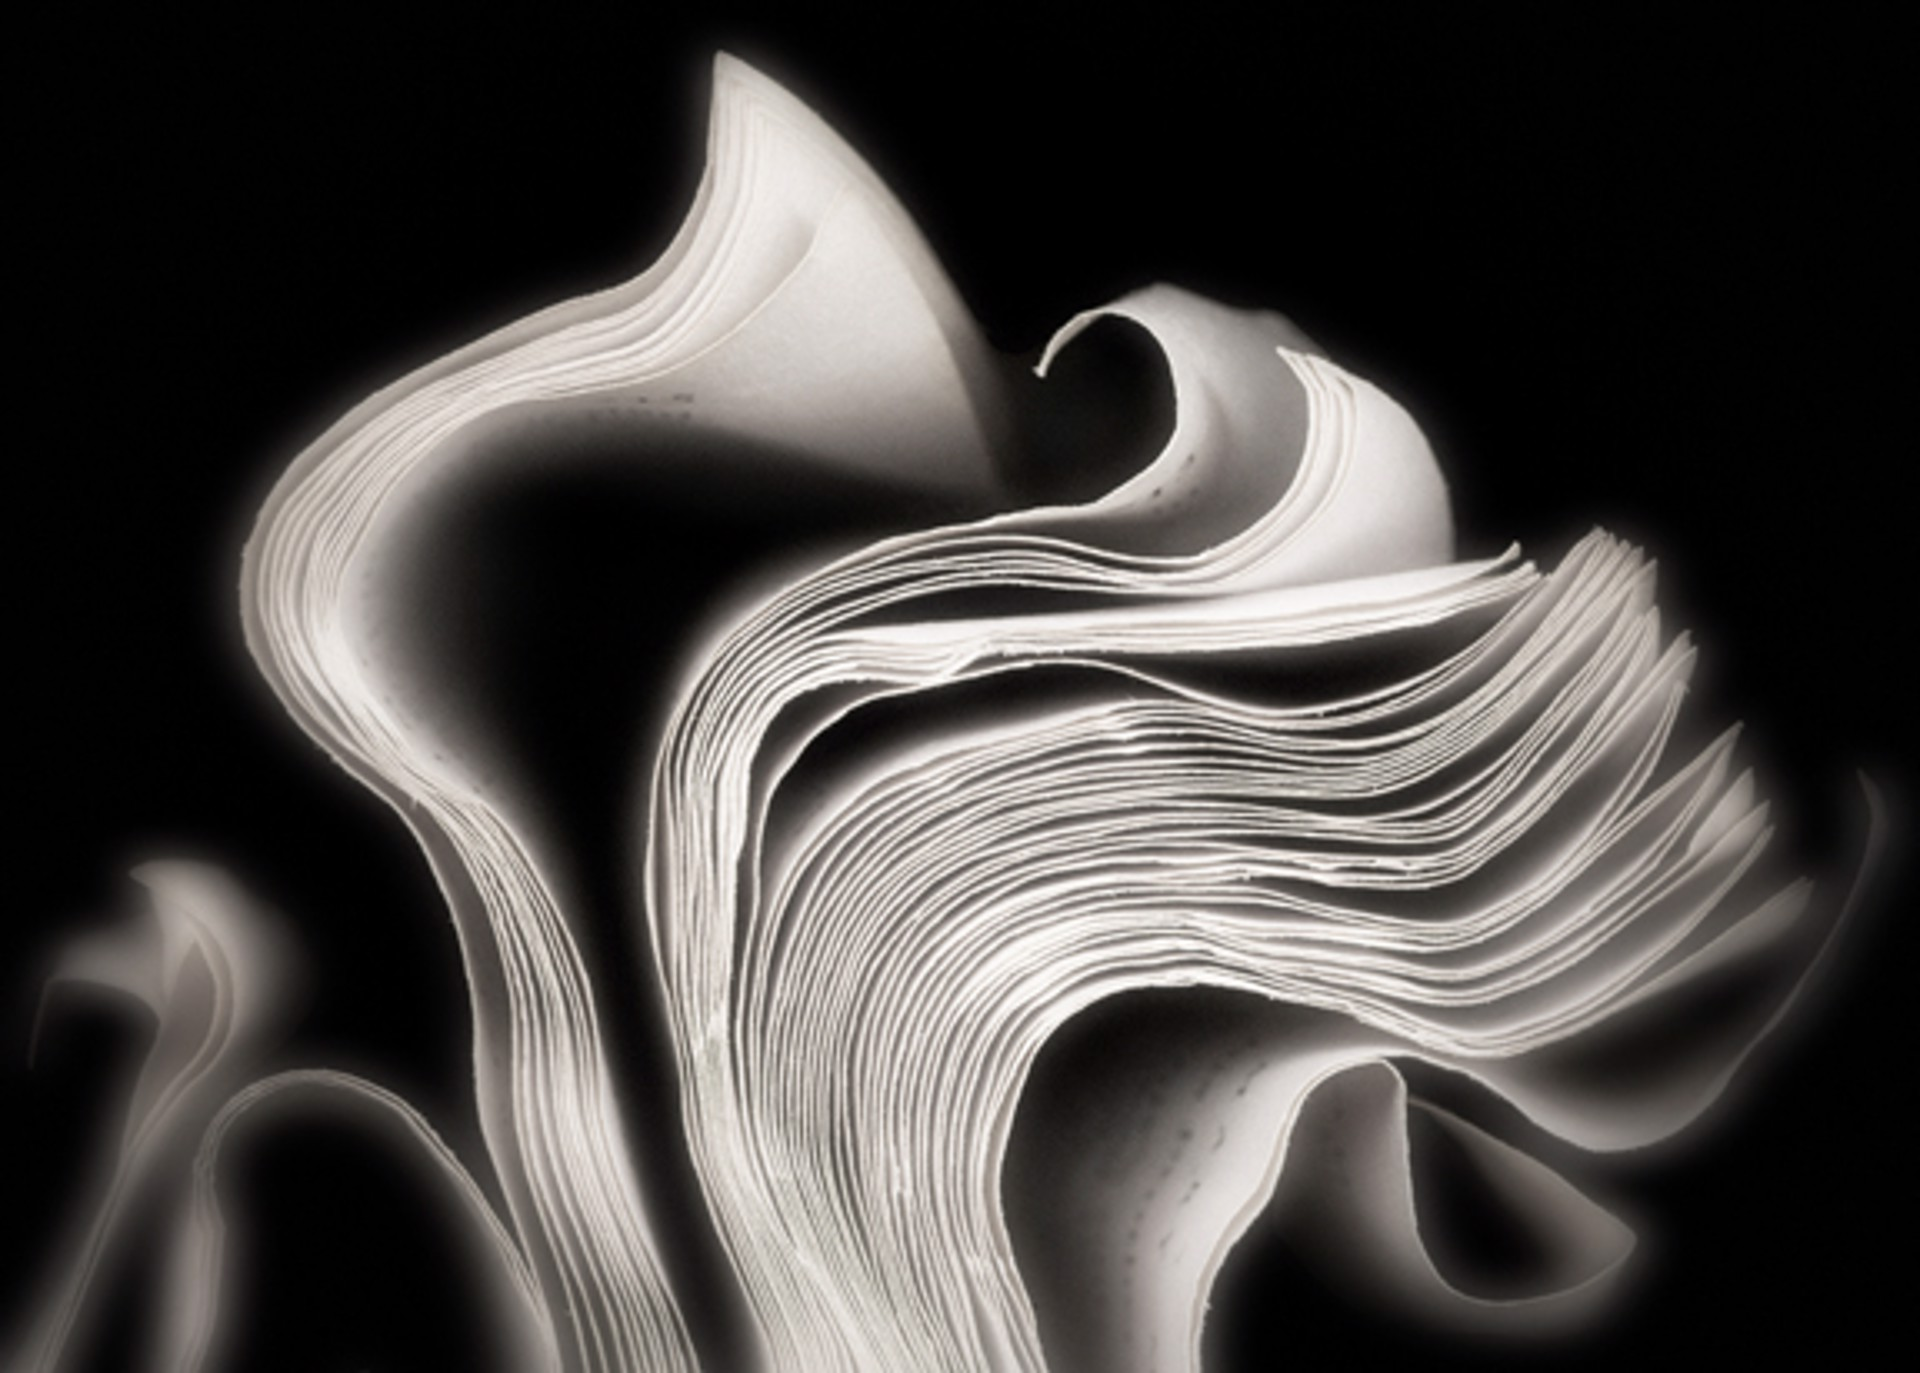 Wave and Fog by Cara Barer